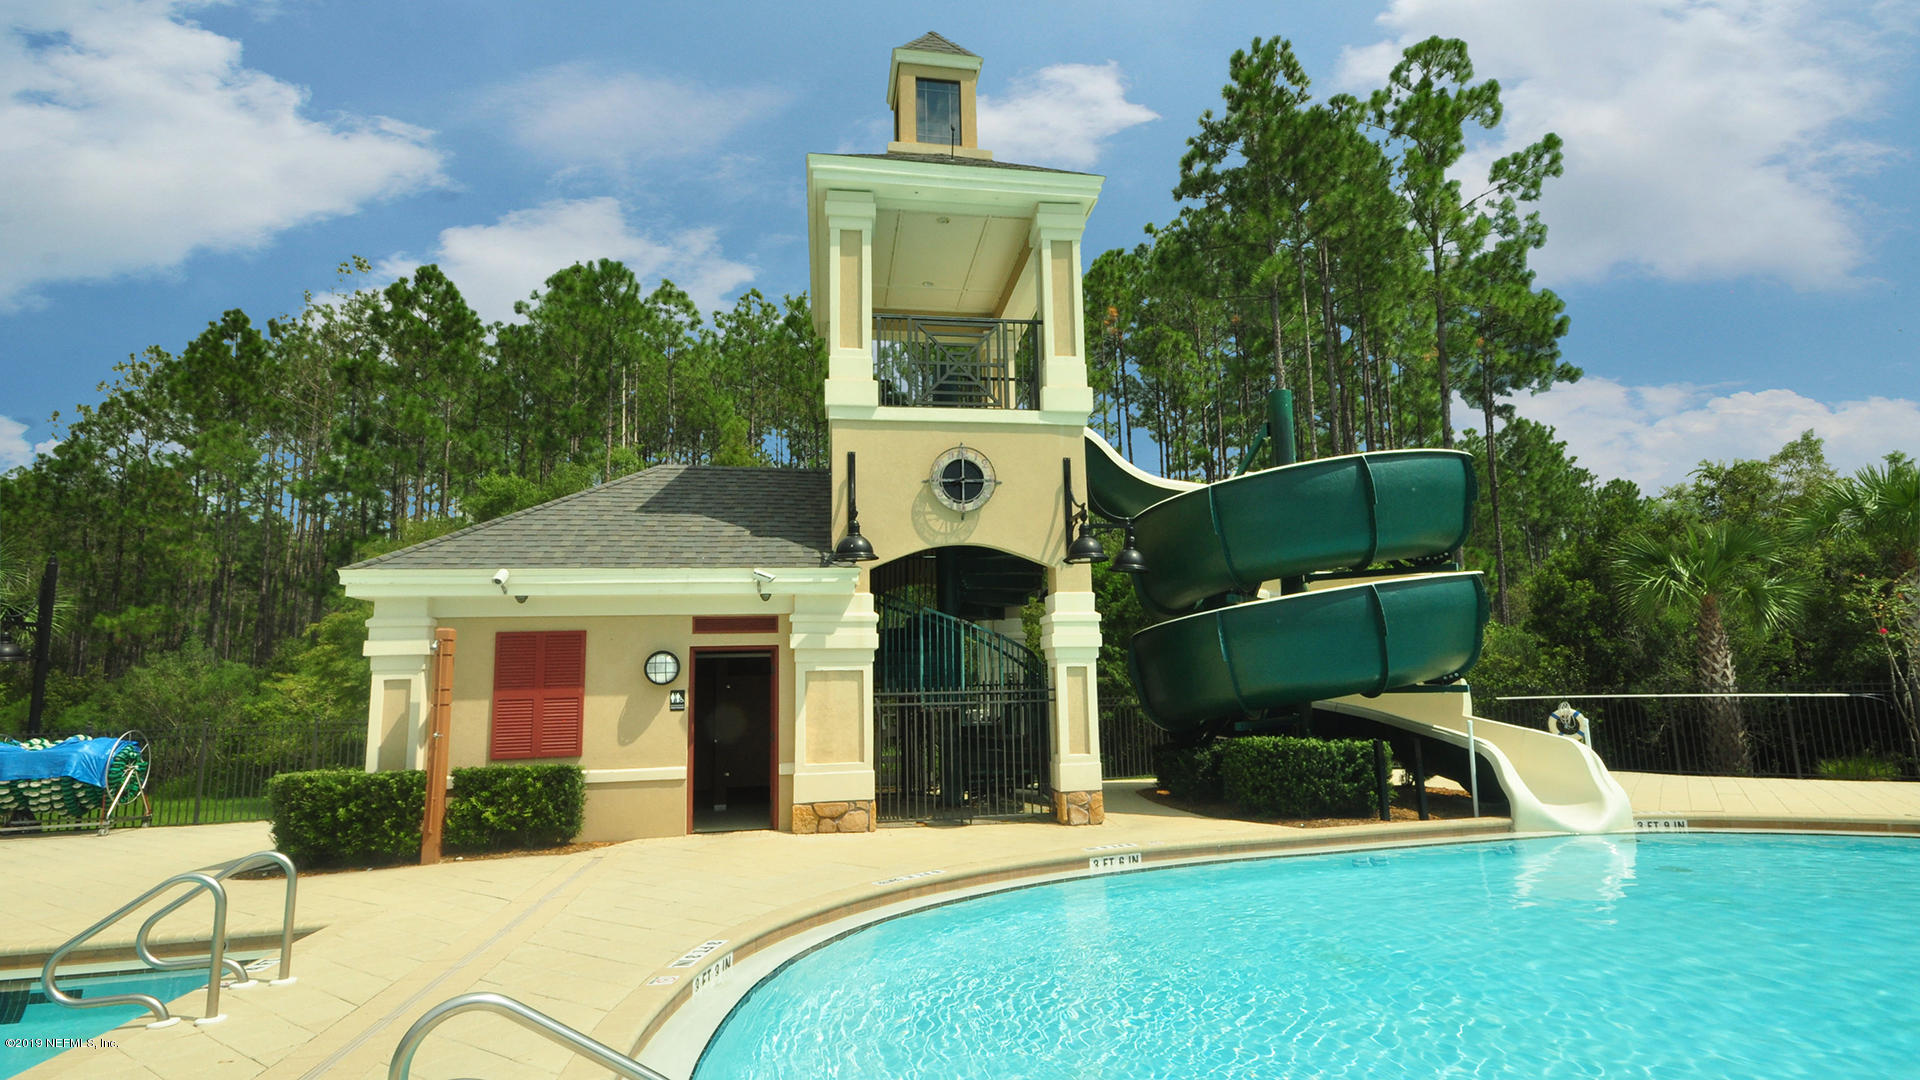 45 SCOTCH PEBBLE, ST JOHNS, FLORIDA 32259, 3 Bedrooms Bedrooms, ,2 BathroomsBathrooms,Residential,For sale,SCOTCH PEBBLE,1080988